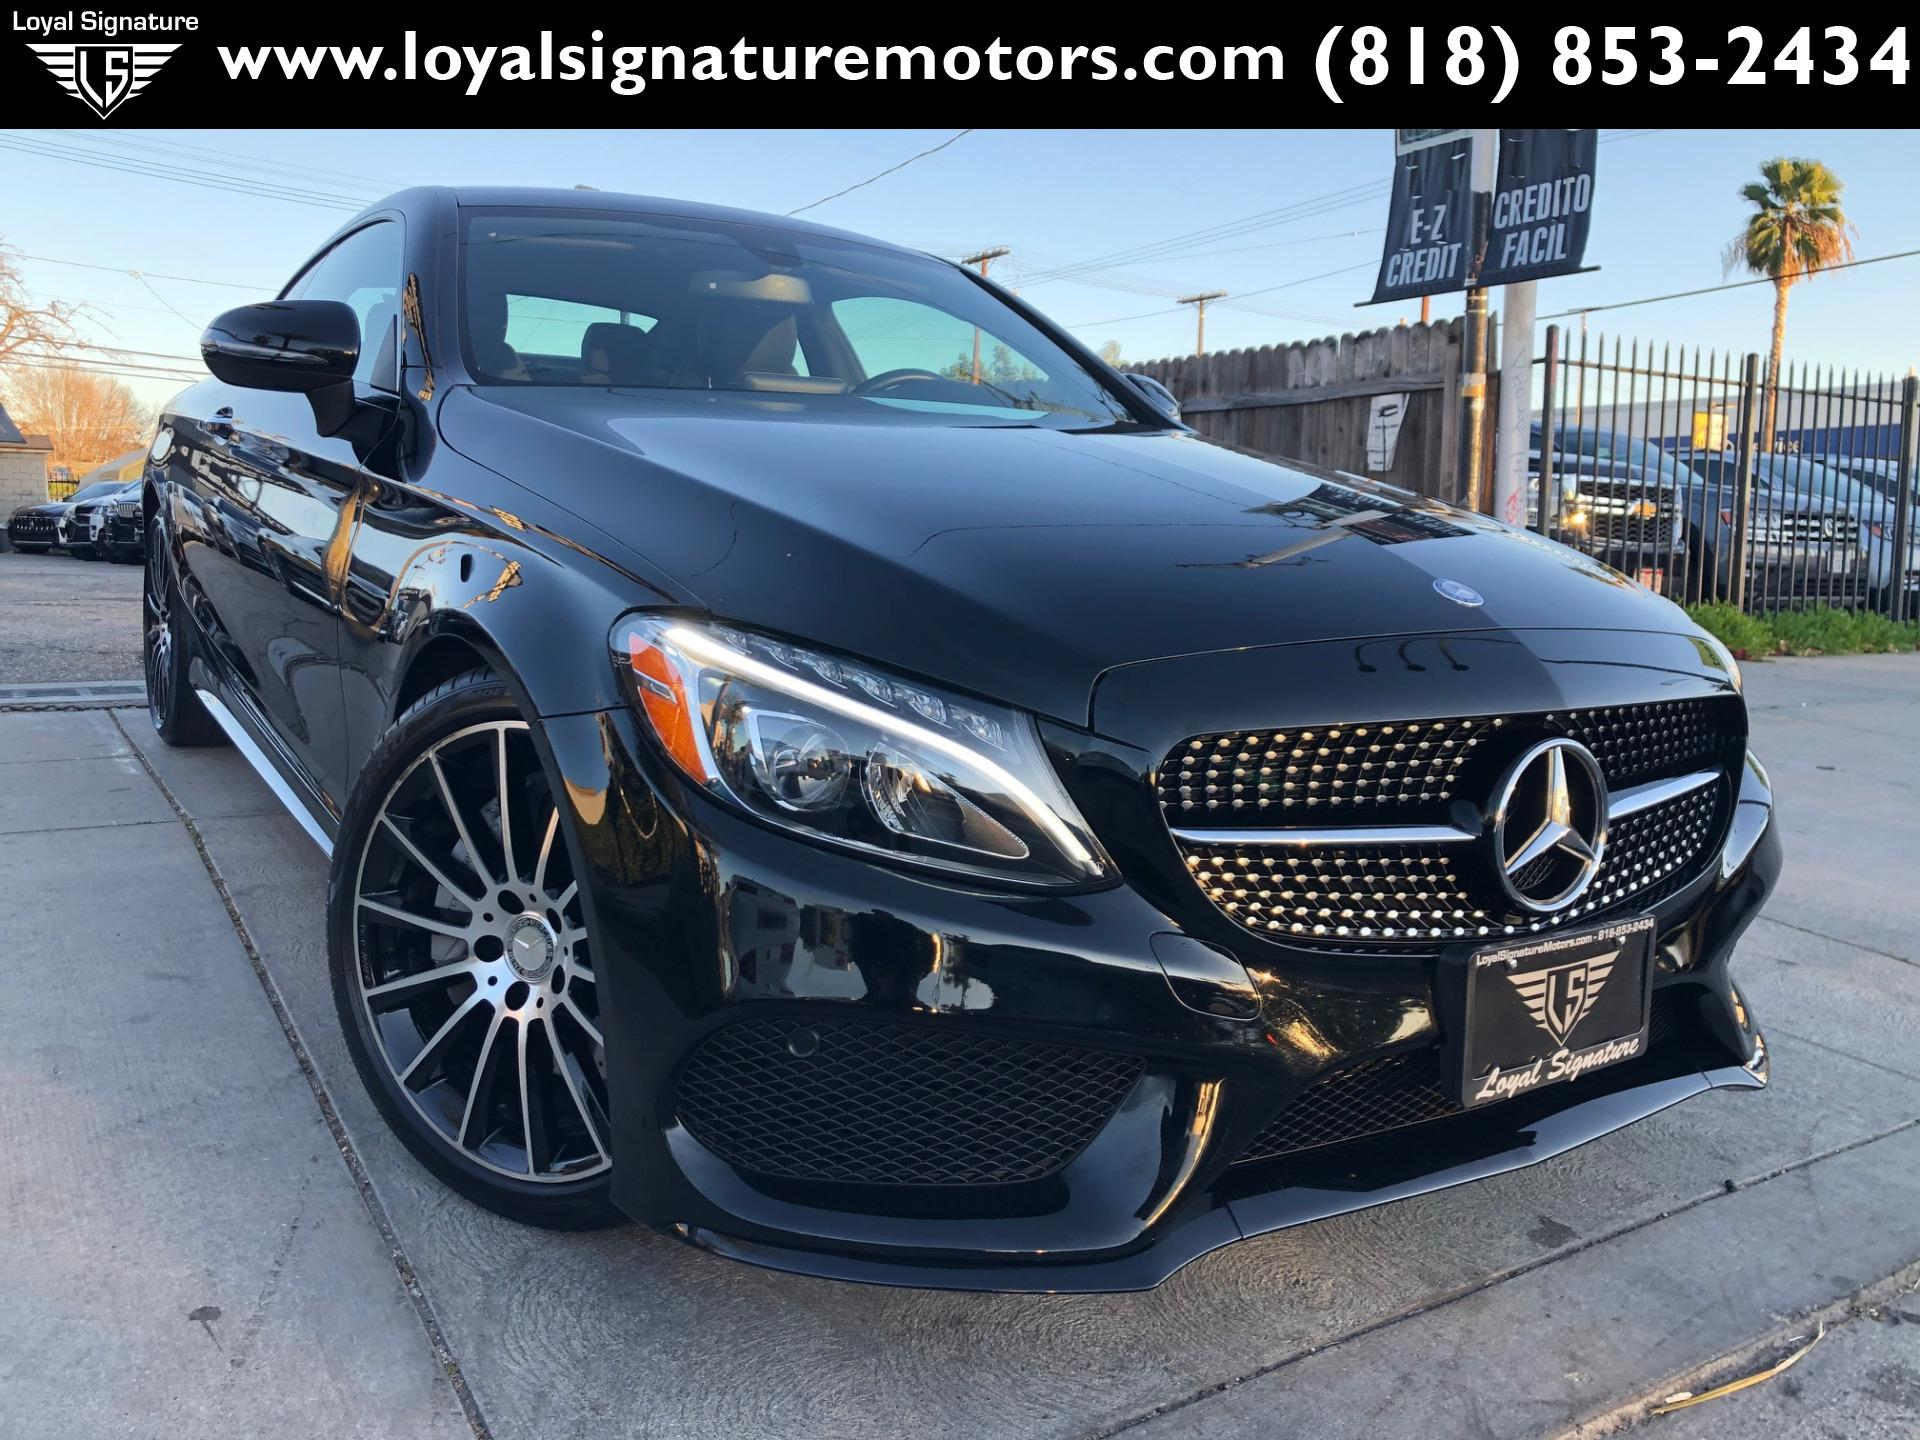 Used 2017 Mercedes-Benz C-Class C 300 For Sale ($29,995) | Loyal Signature Motors Inc Stock #202035